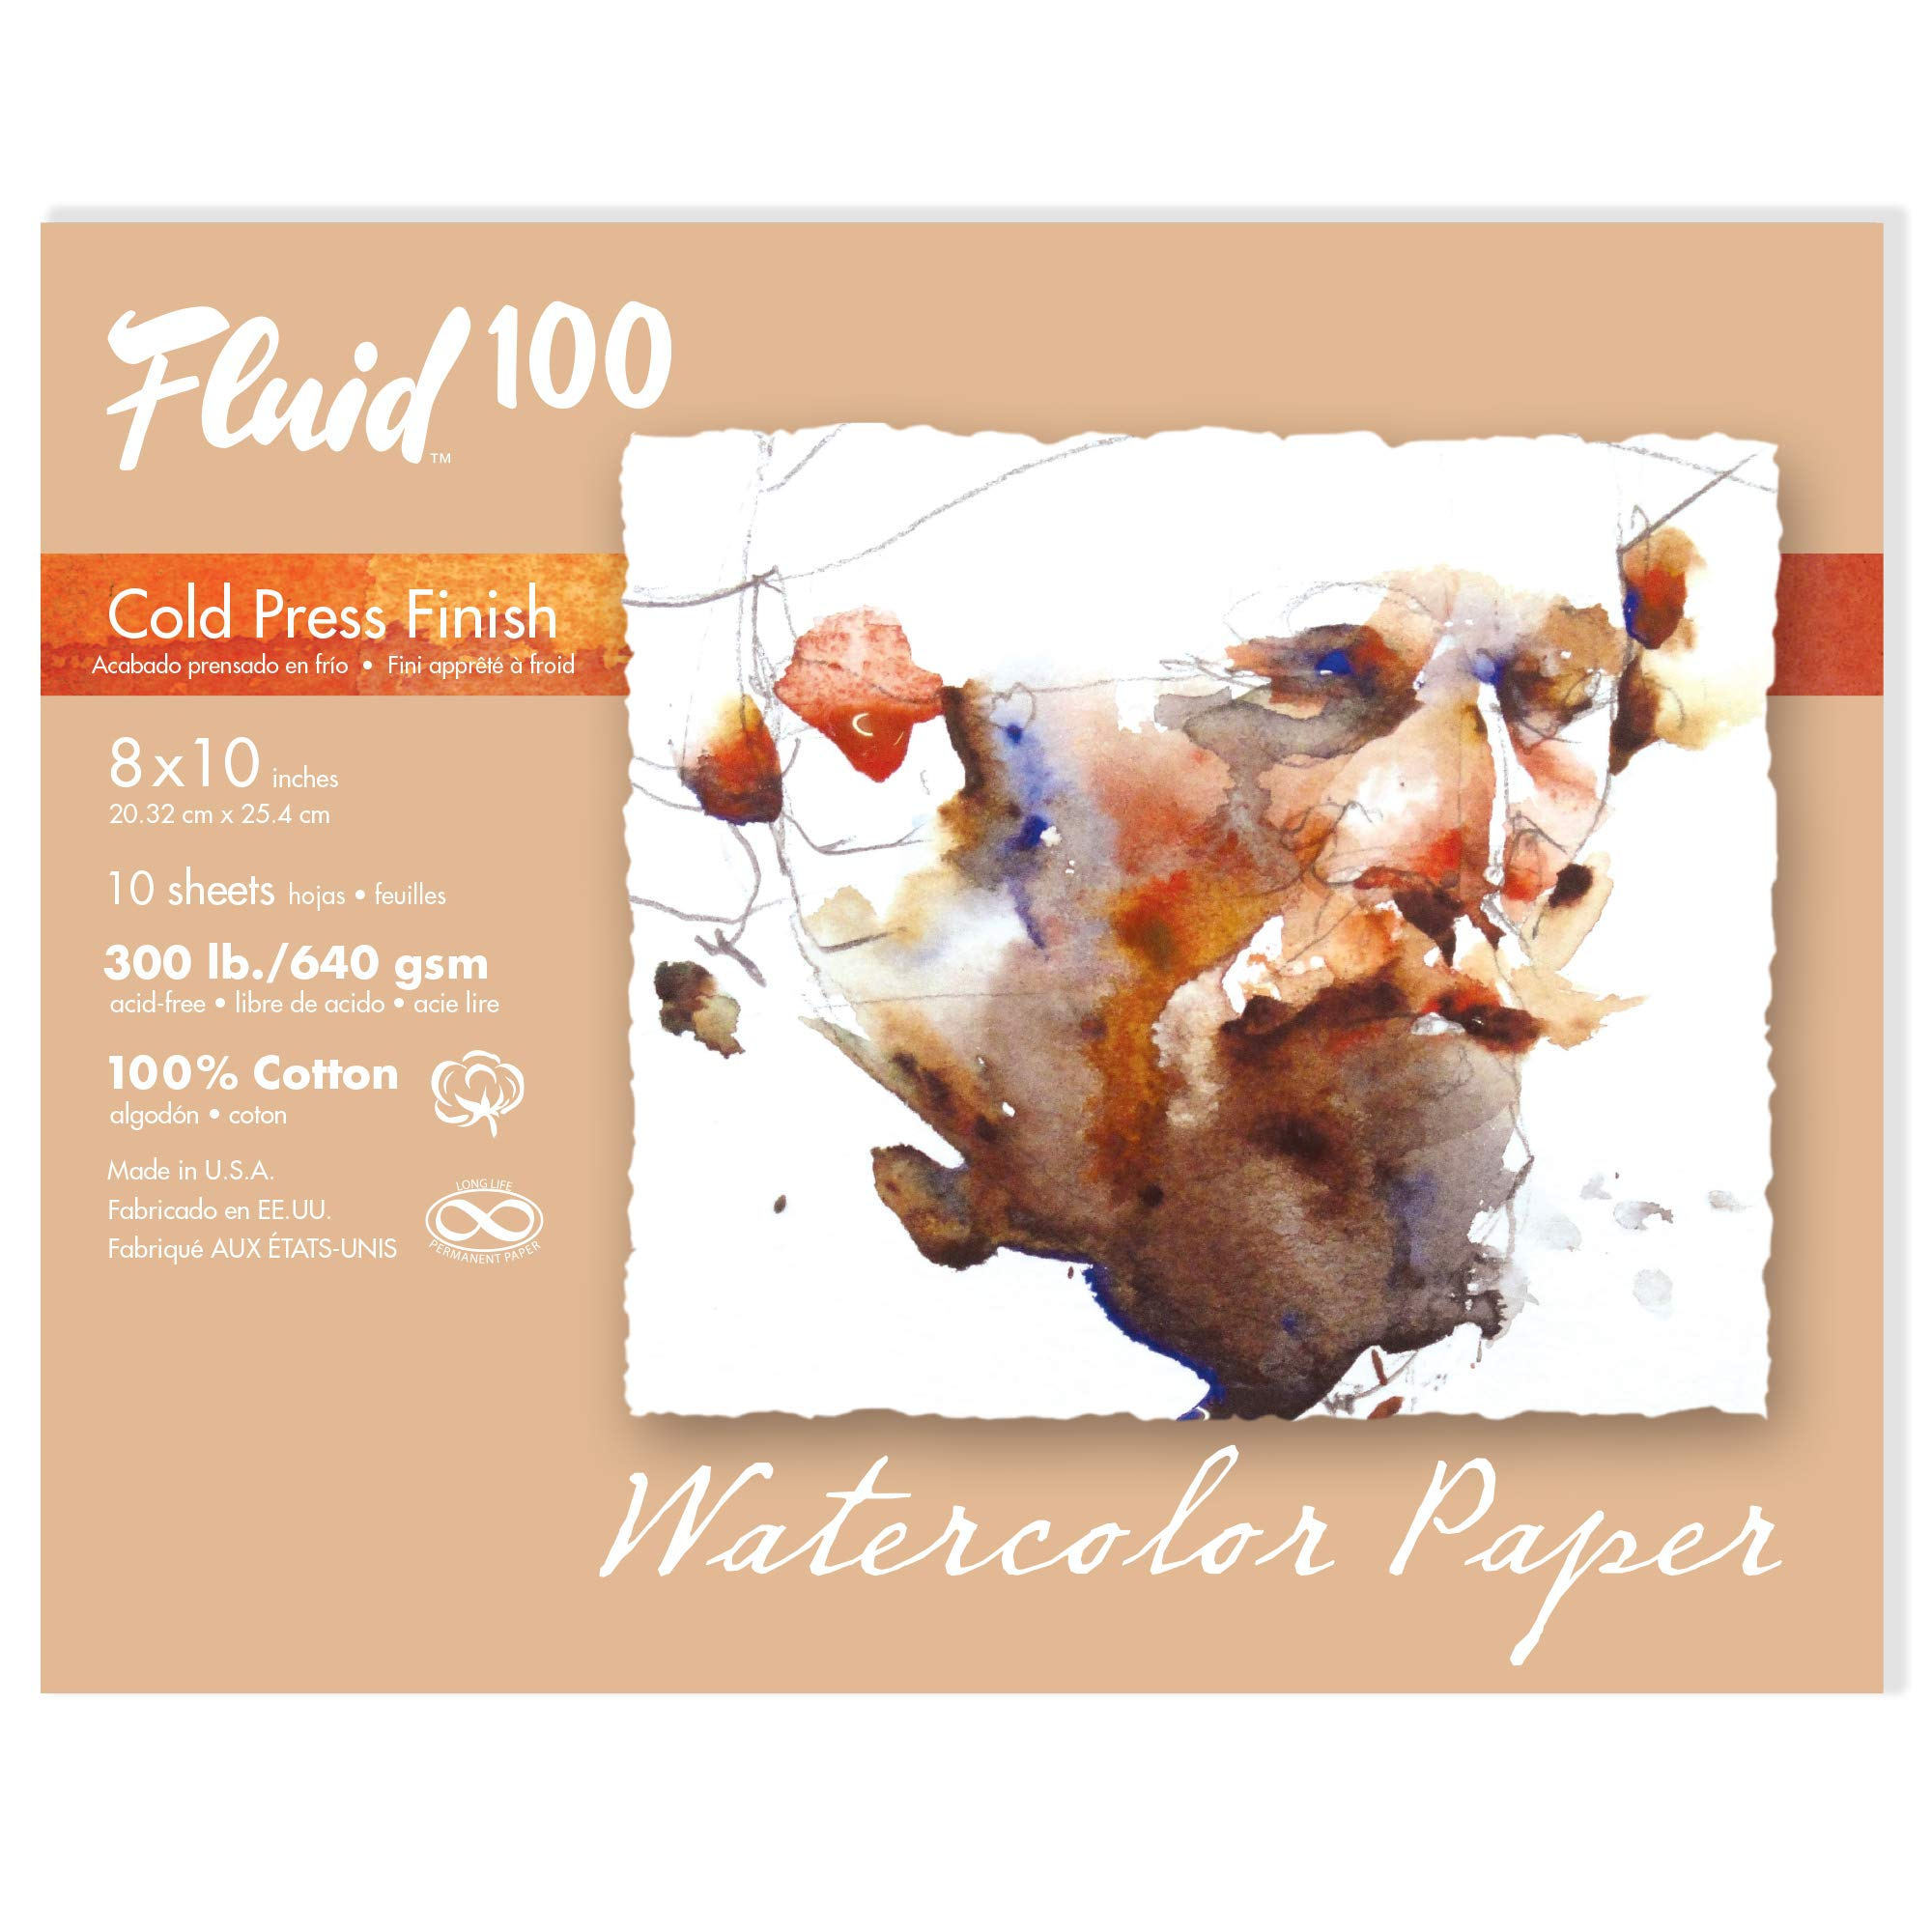 Speedball Art Products 821716 Fluid 100 Artist Watercolor Paper 300 lb Cold Press, 8 x 10-Inch Pochette, 100% Cotton Natural White by Speedball